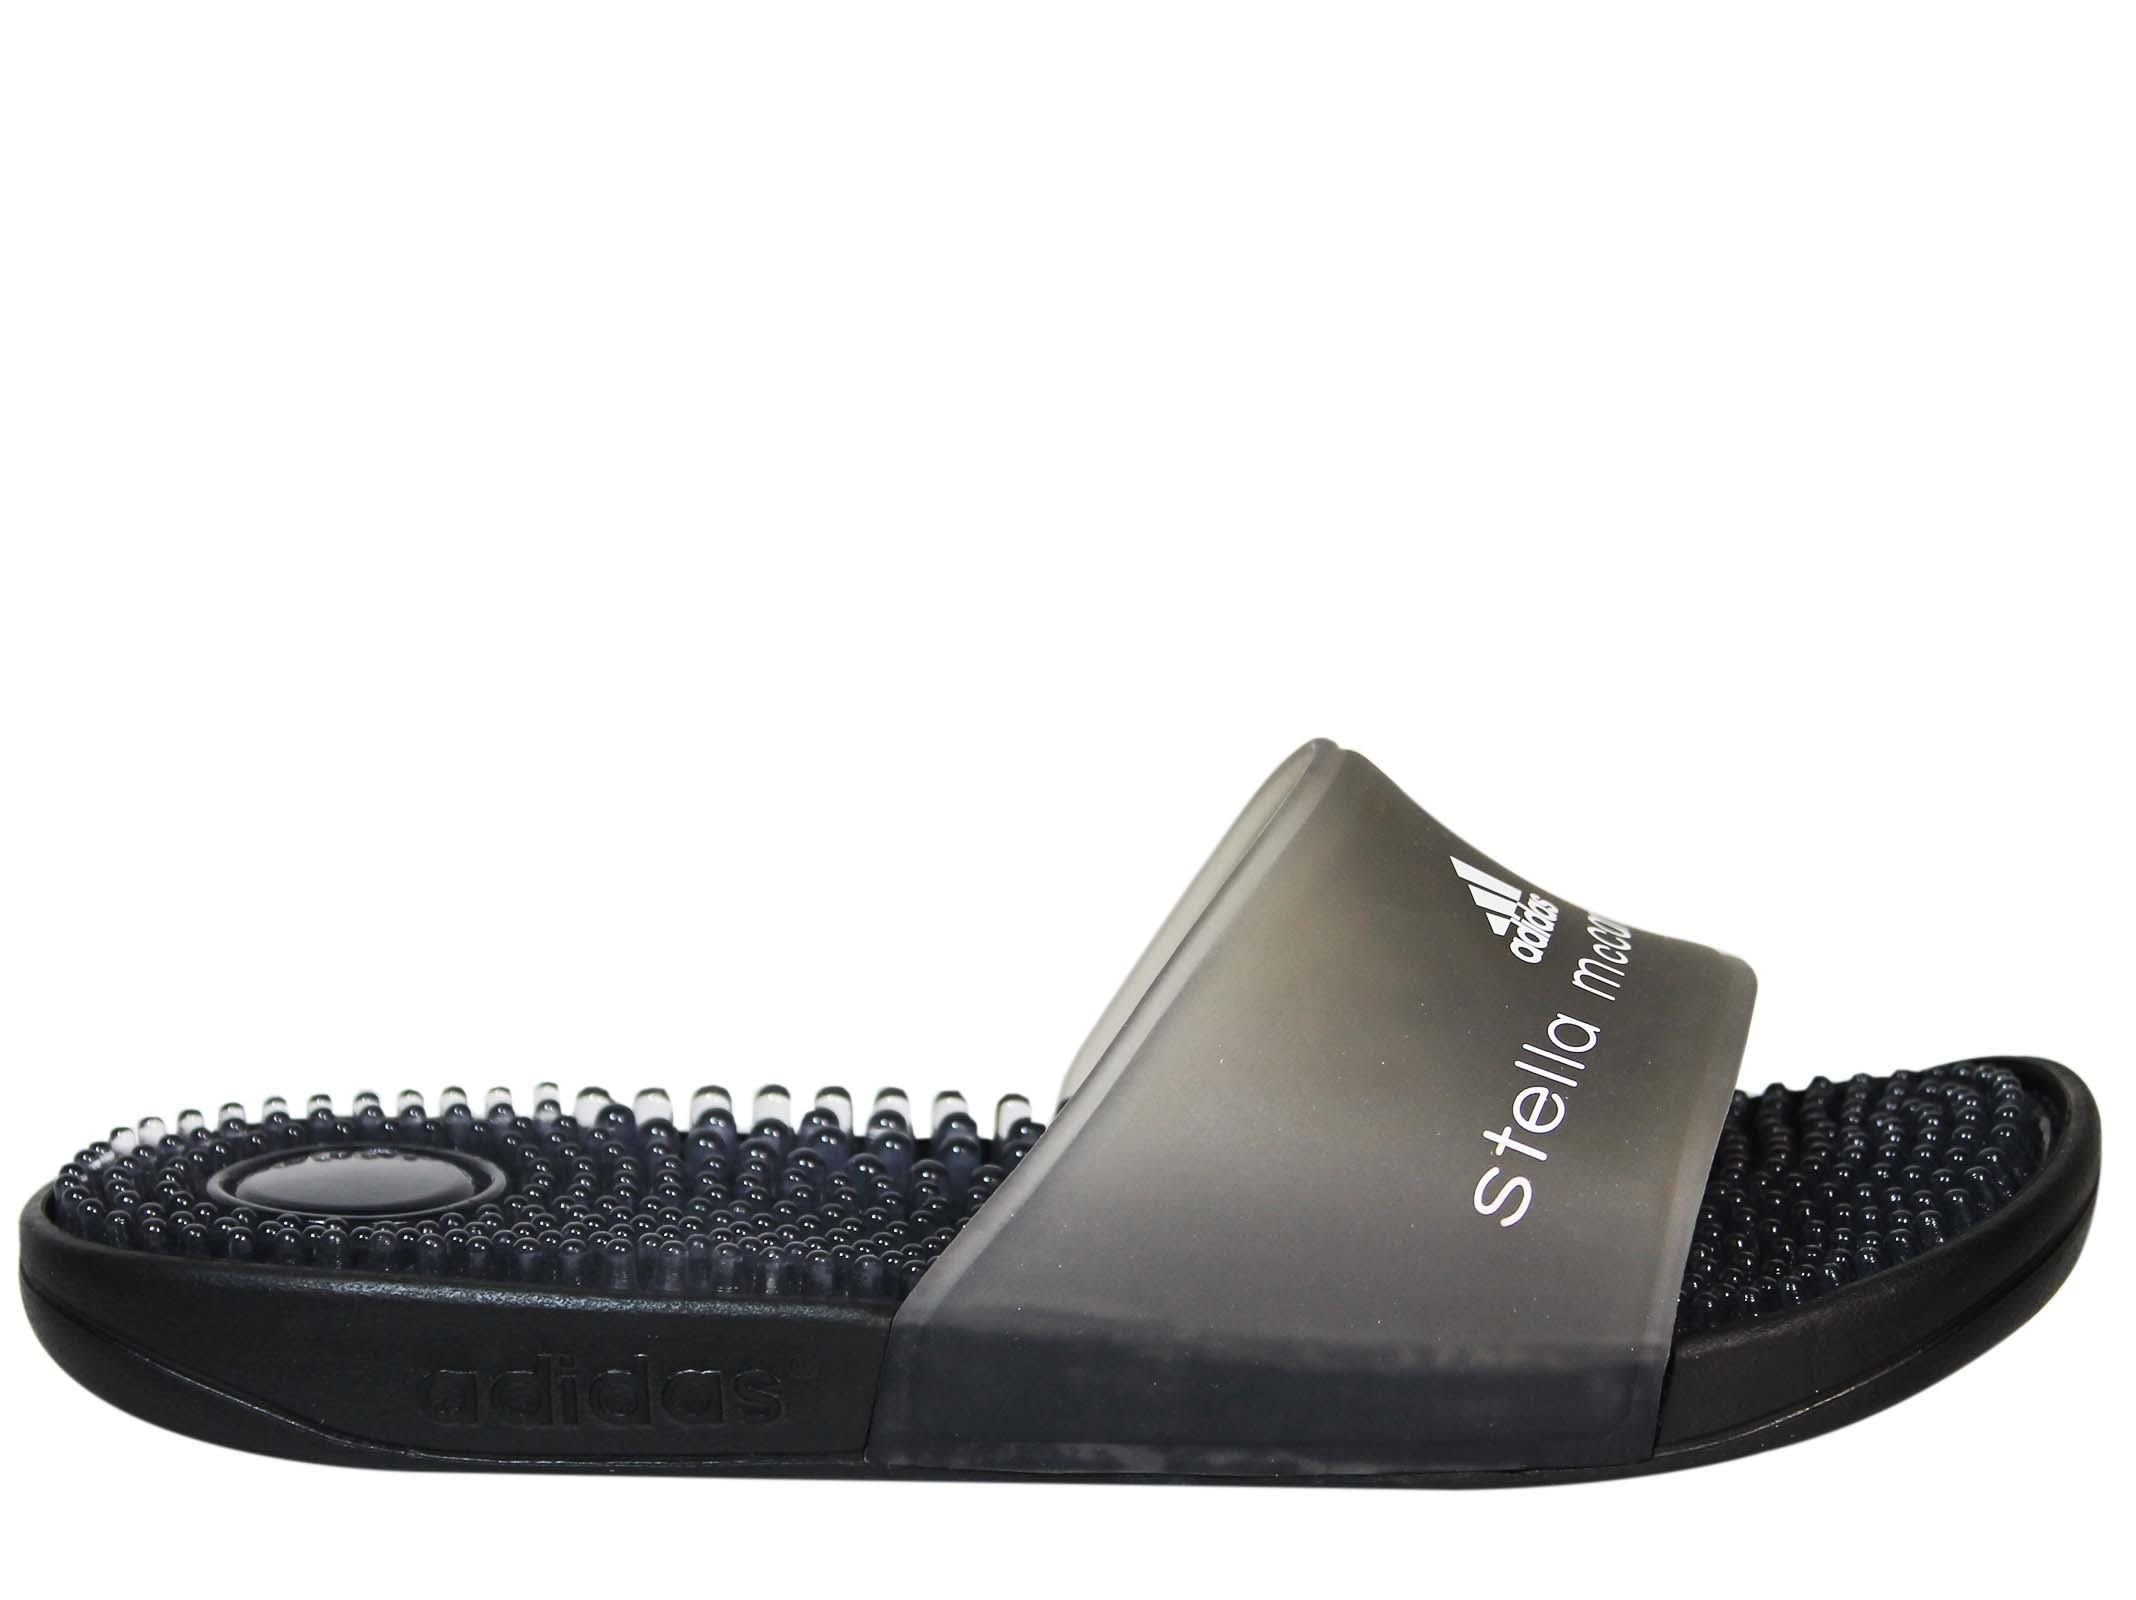 Adidas by Stella McCartney Black Adissage Sliders